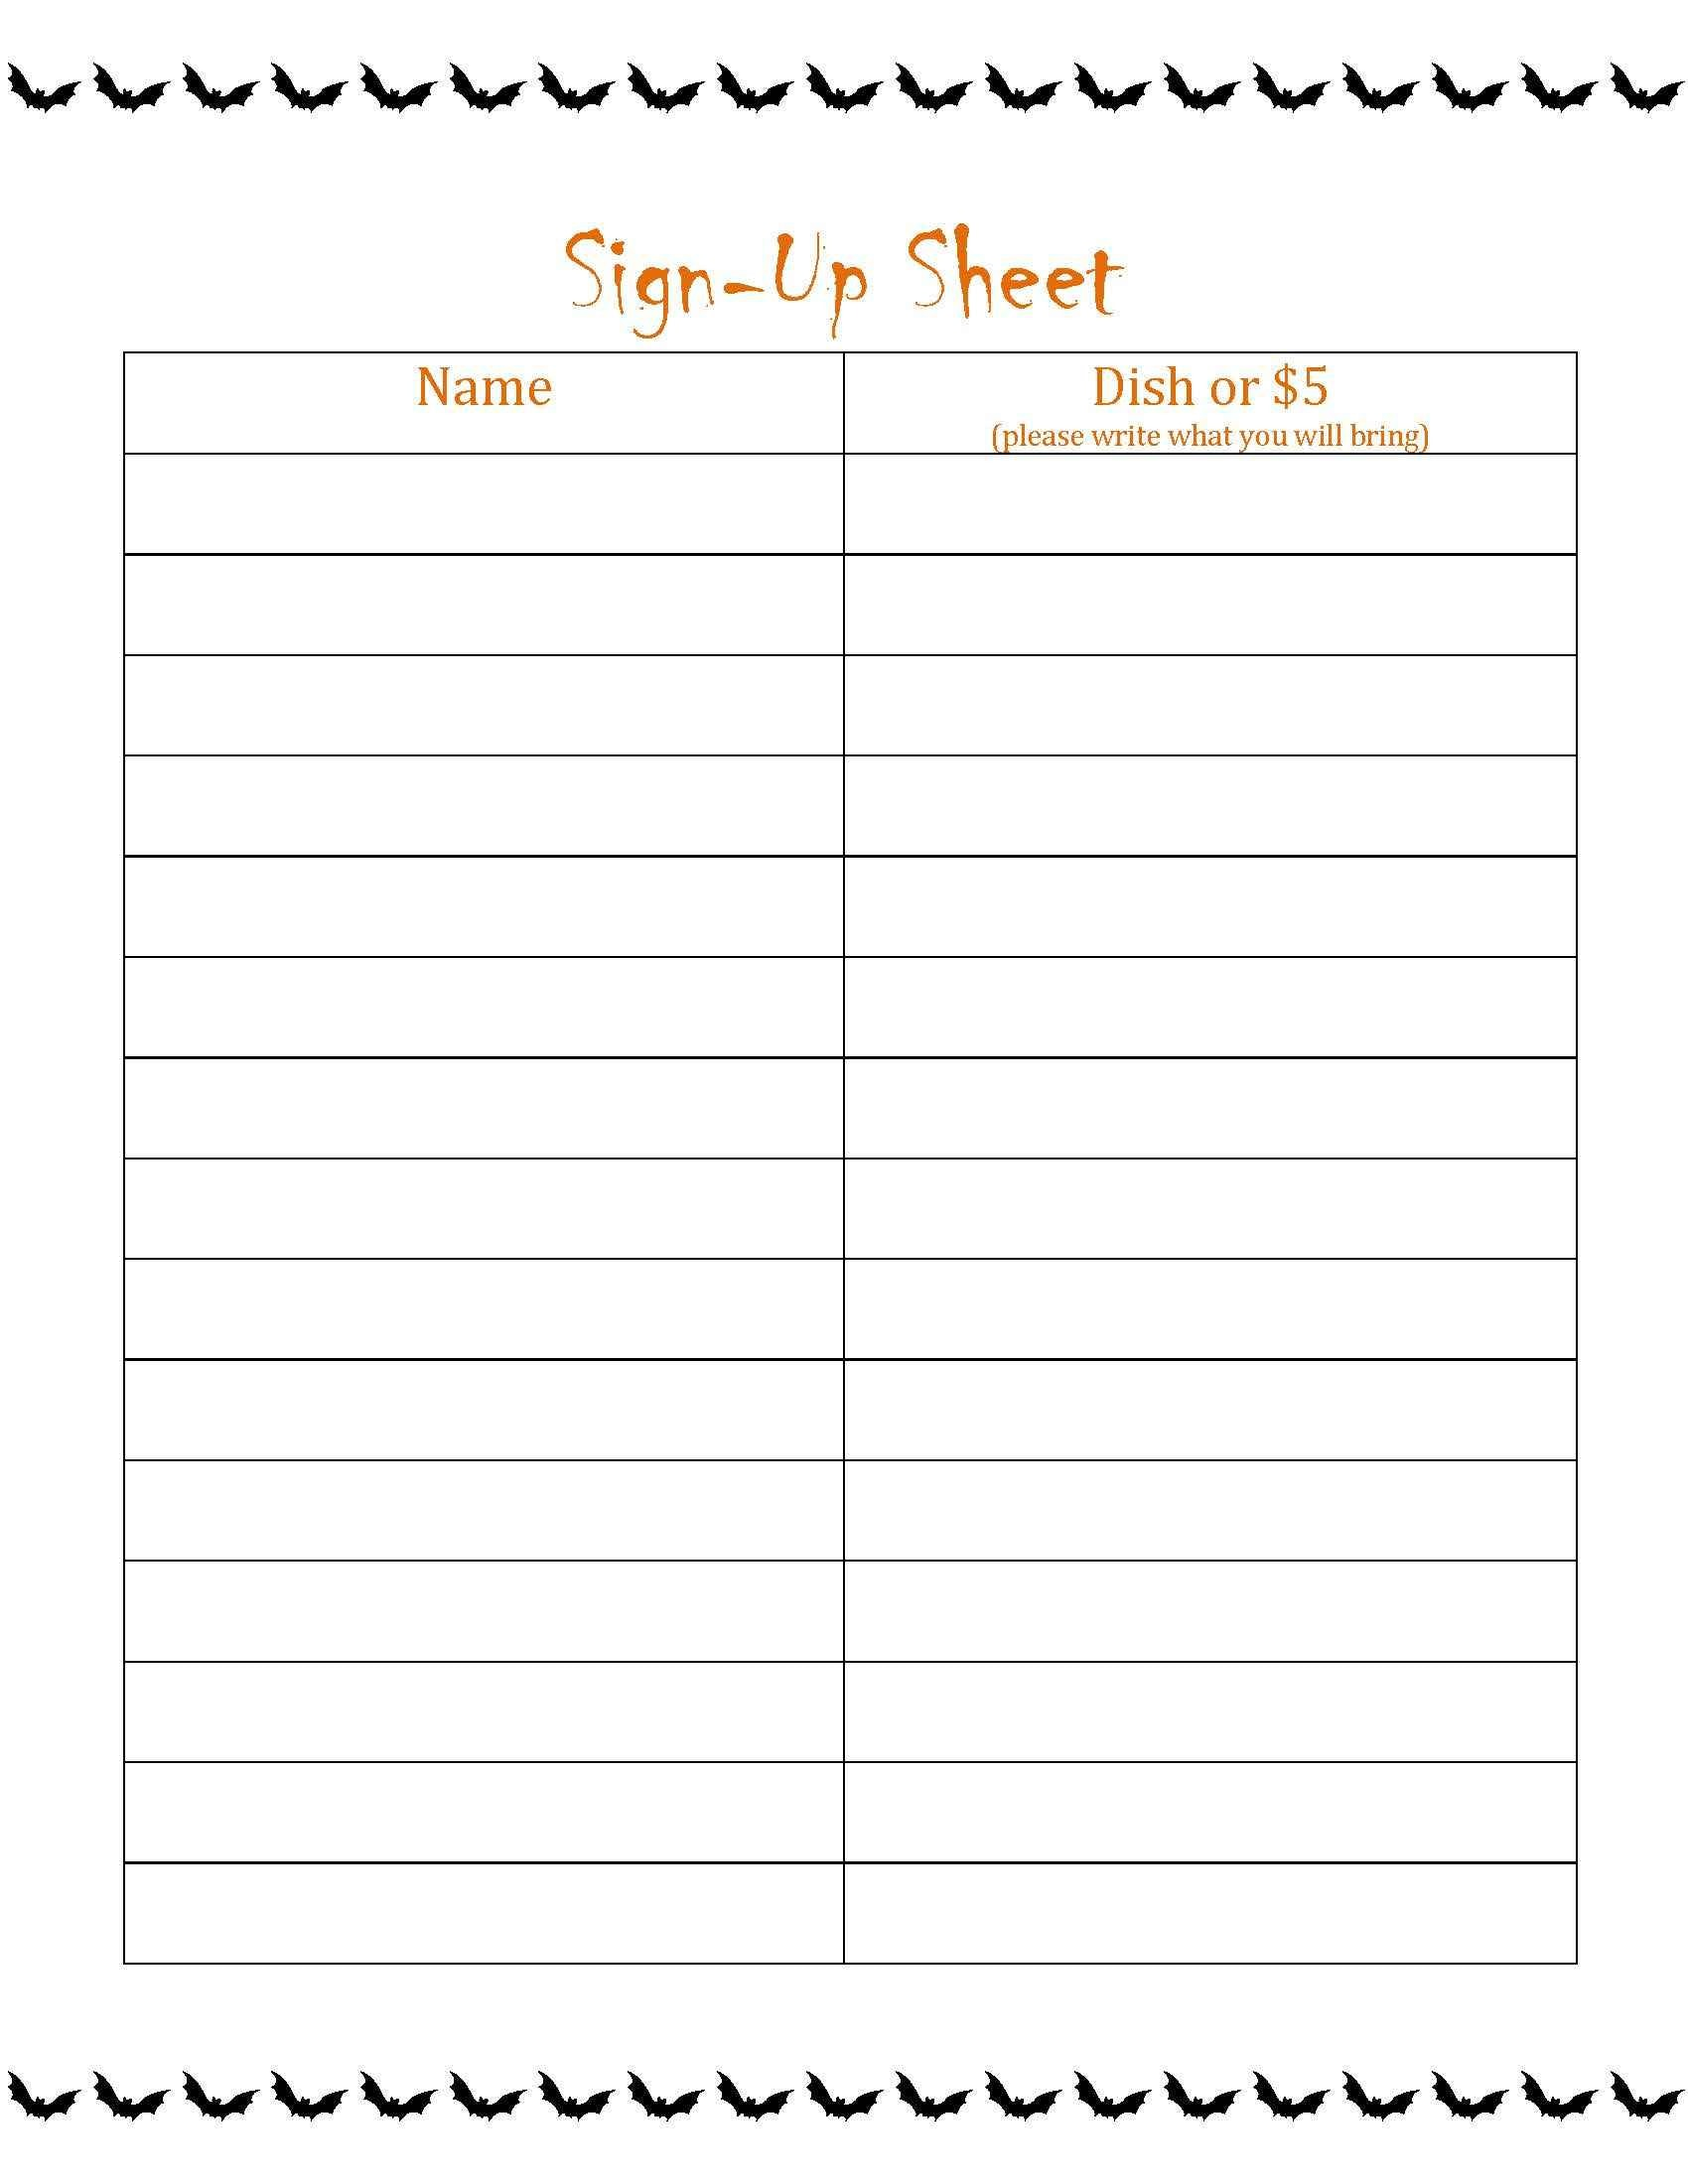 It is an image of Printable Potluck Sign Up Sheets intended for halloween potluck